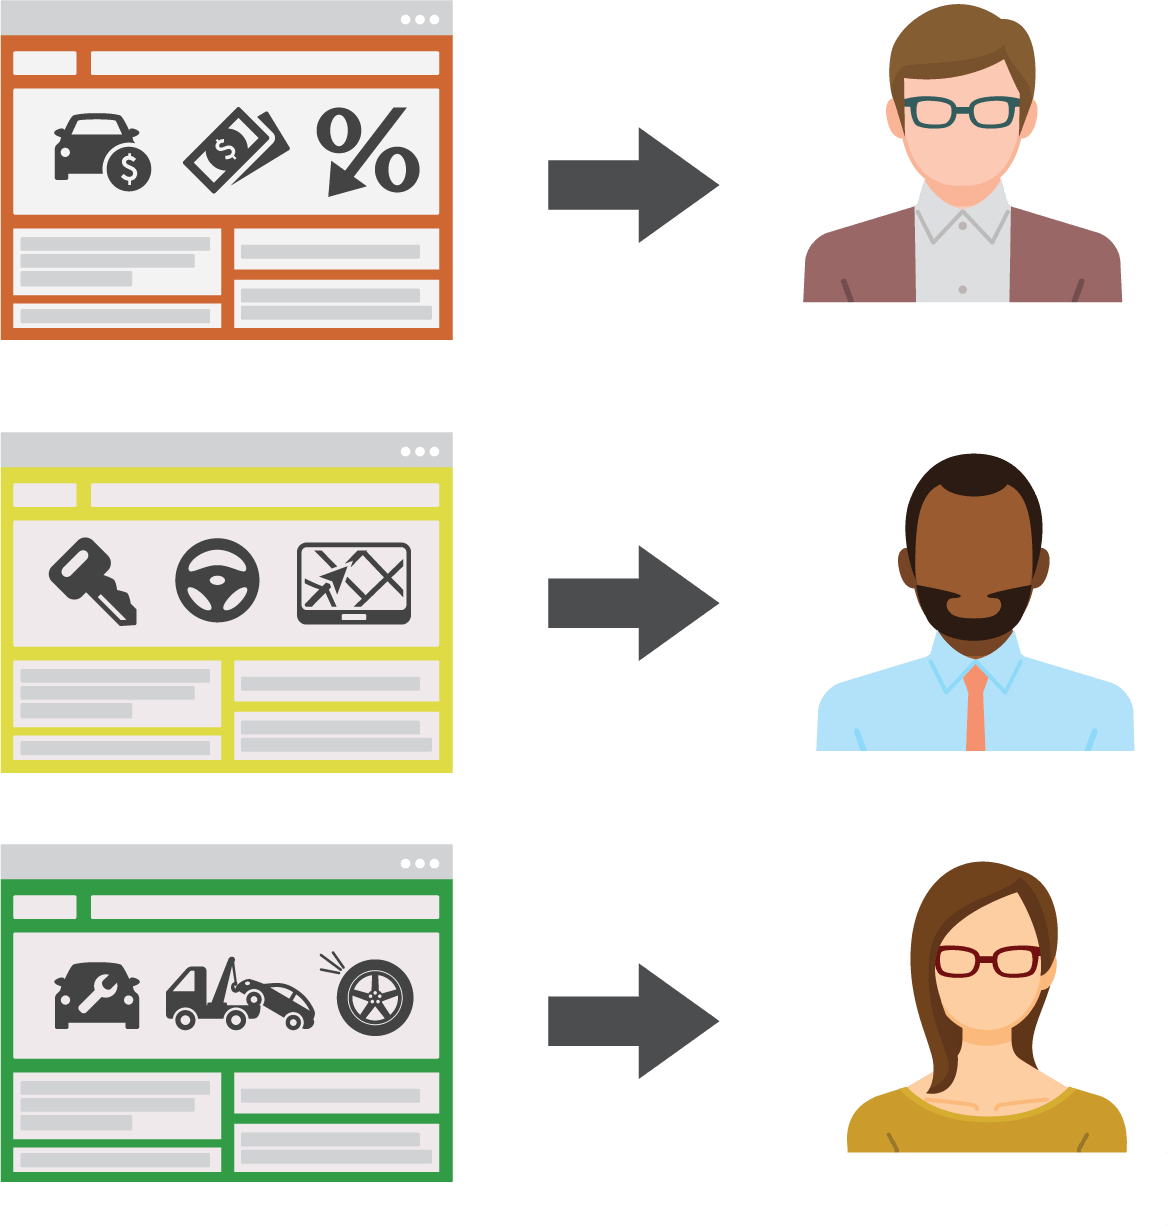 personalized website, different website content for different users